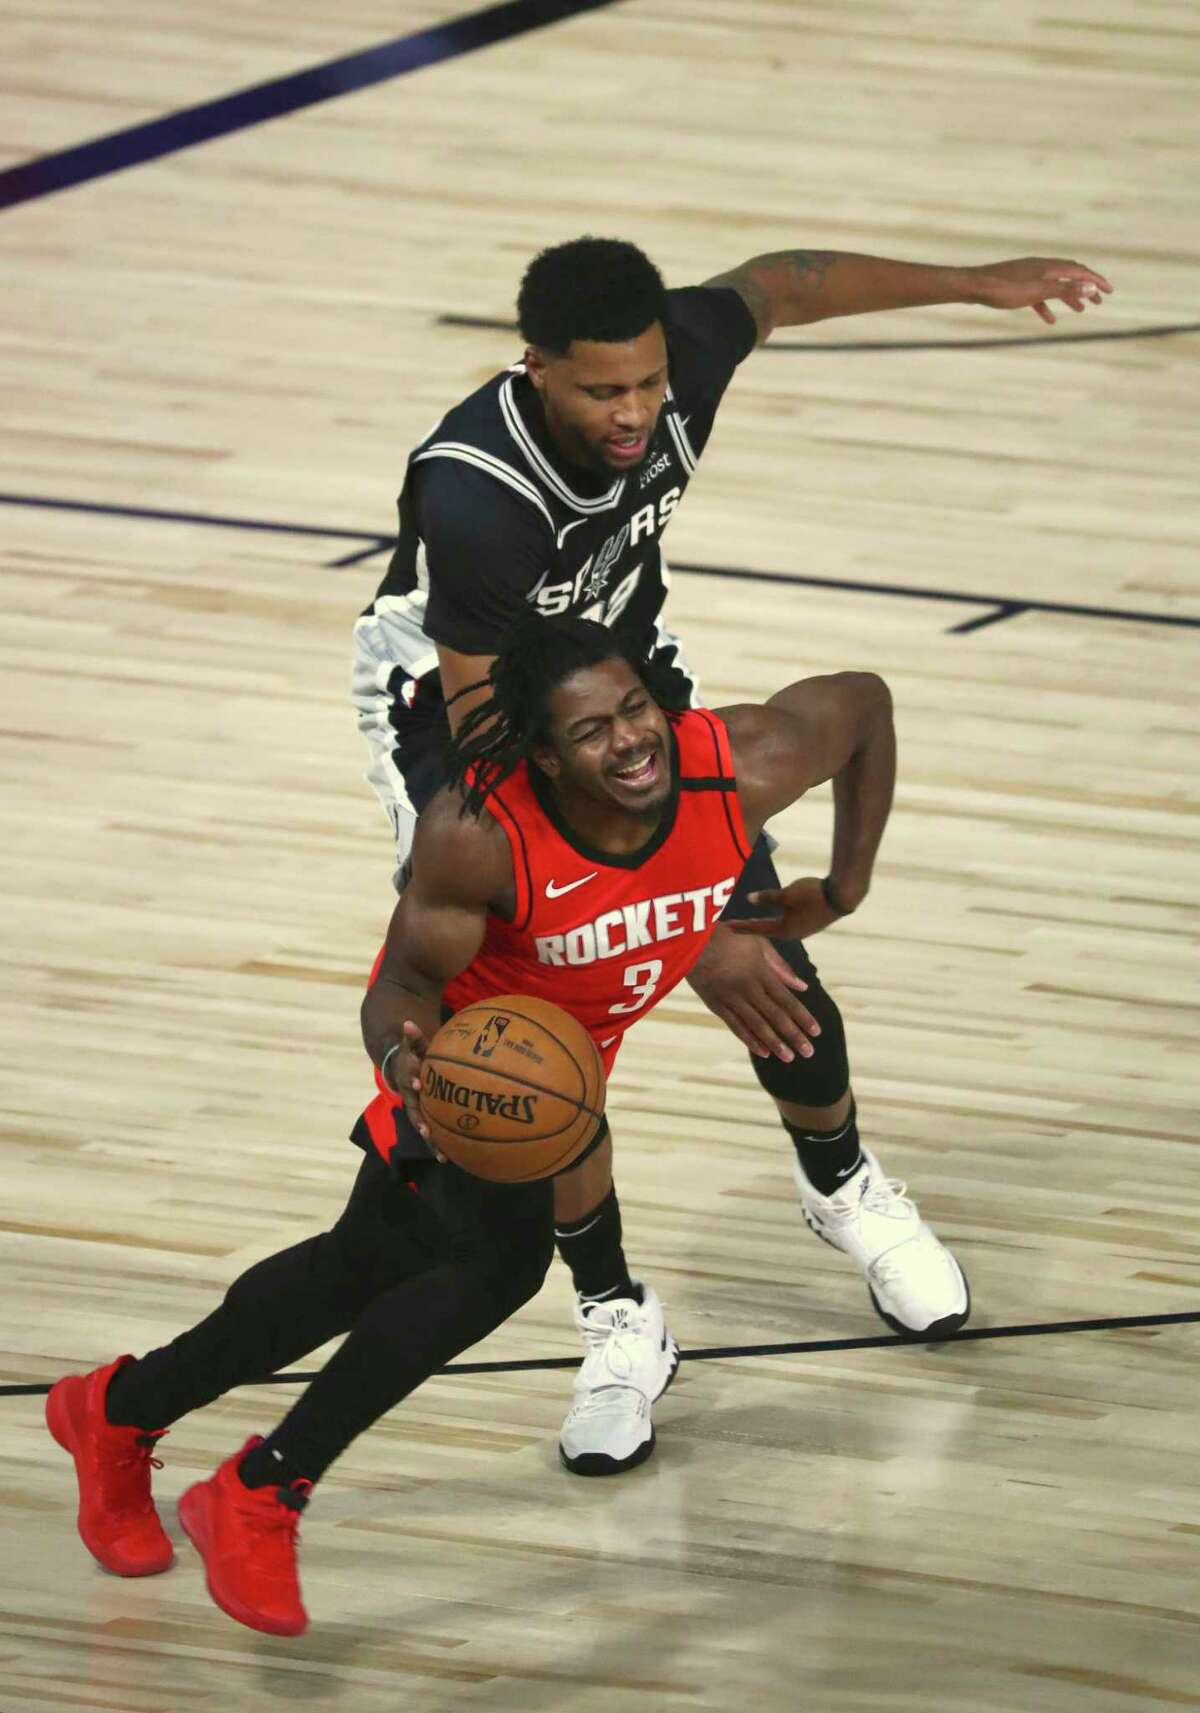 San Antonio Spurs forward Rudy Gay (22), rear, fouls Houston Rockets guard Chris Clemons (3) during the first half of a NBA basketball game Tuesday, Aug. 11, 2020, in Lake Buena Vista, Fla. (Kim Klement/Pool Photo via AP)